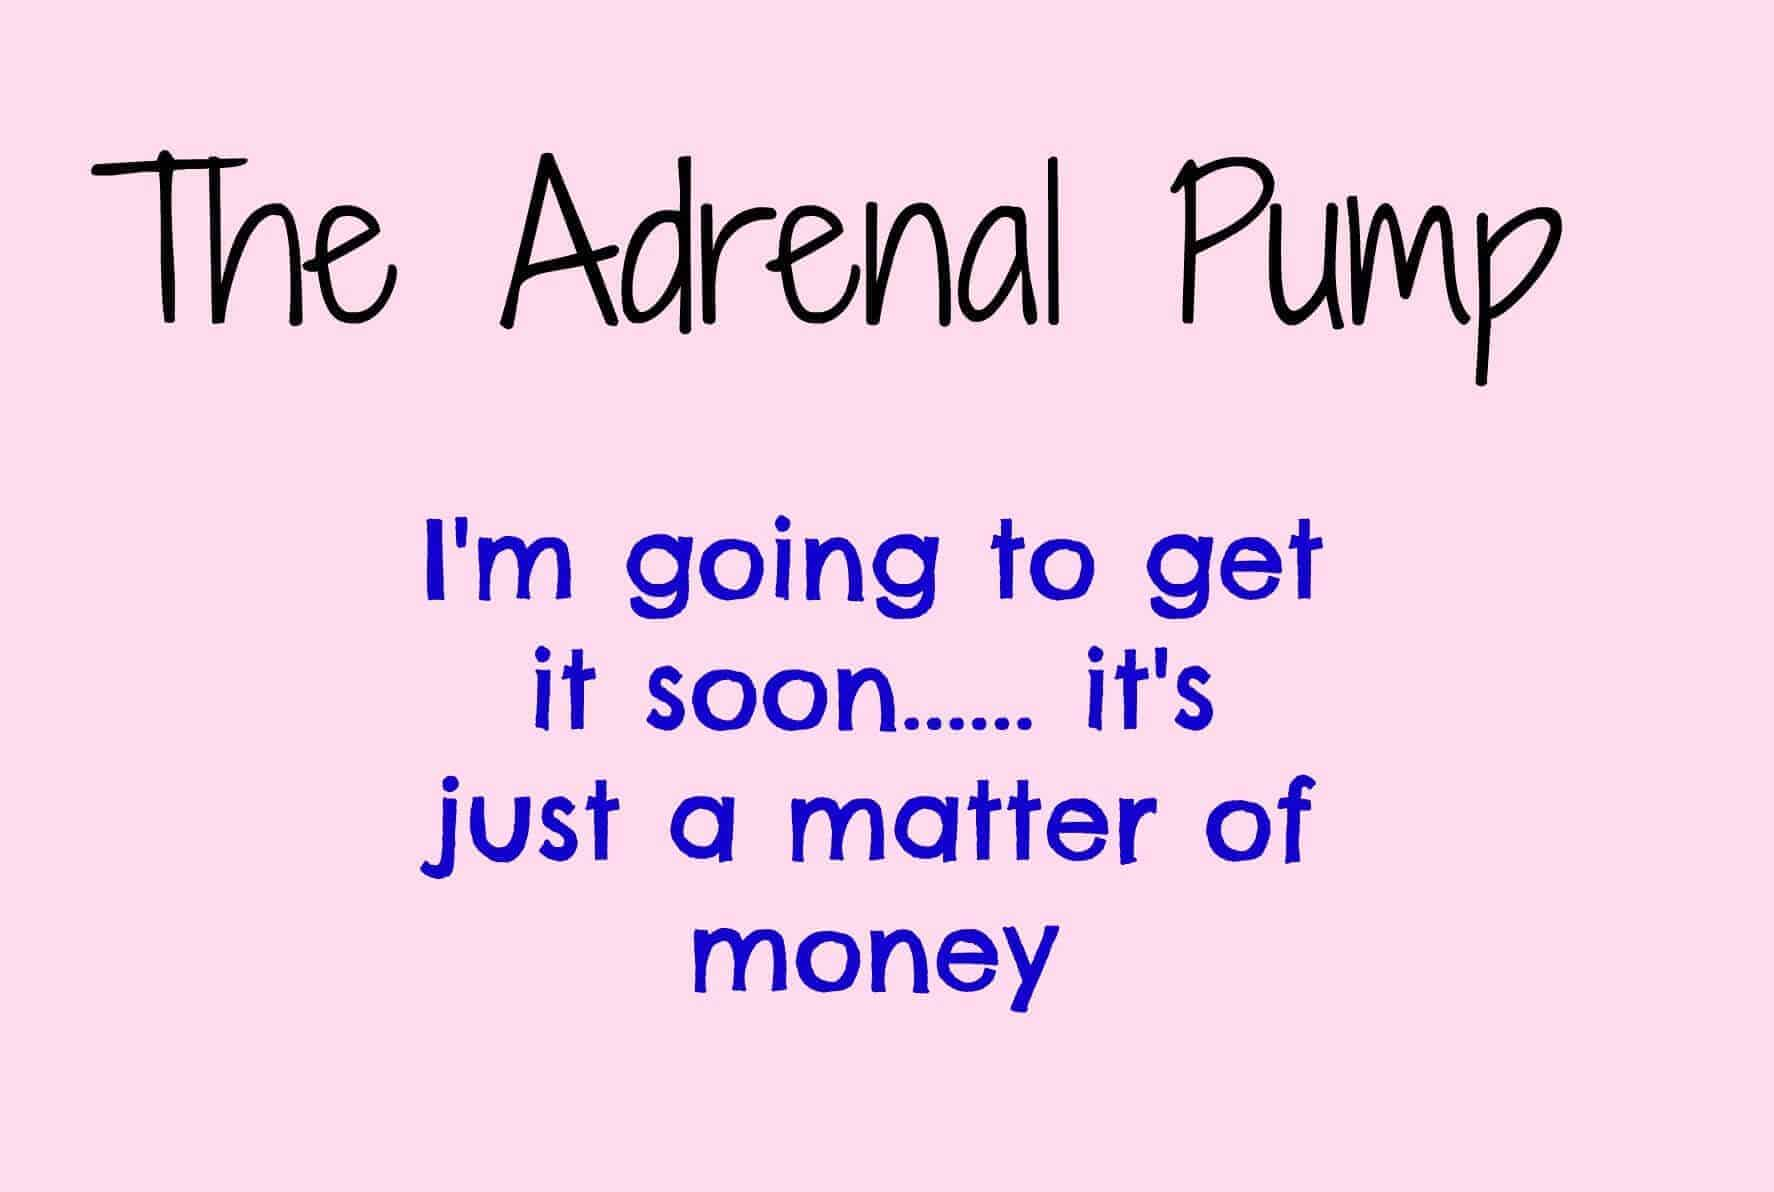 adrenal pump